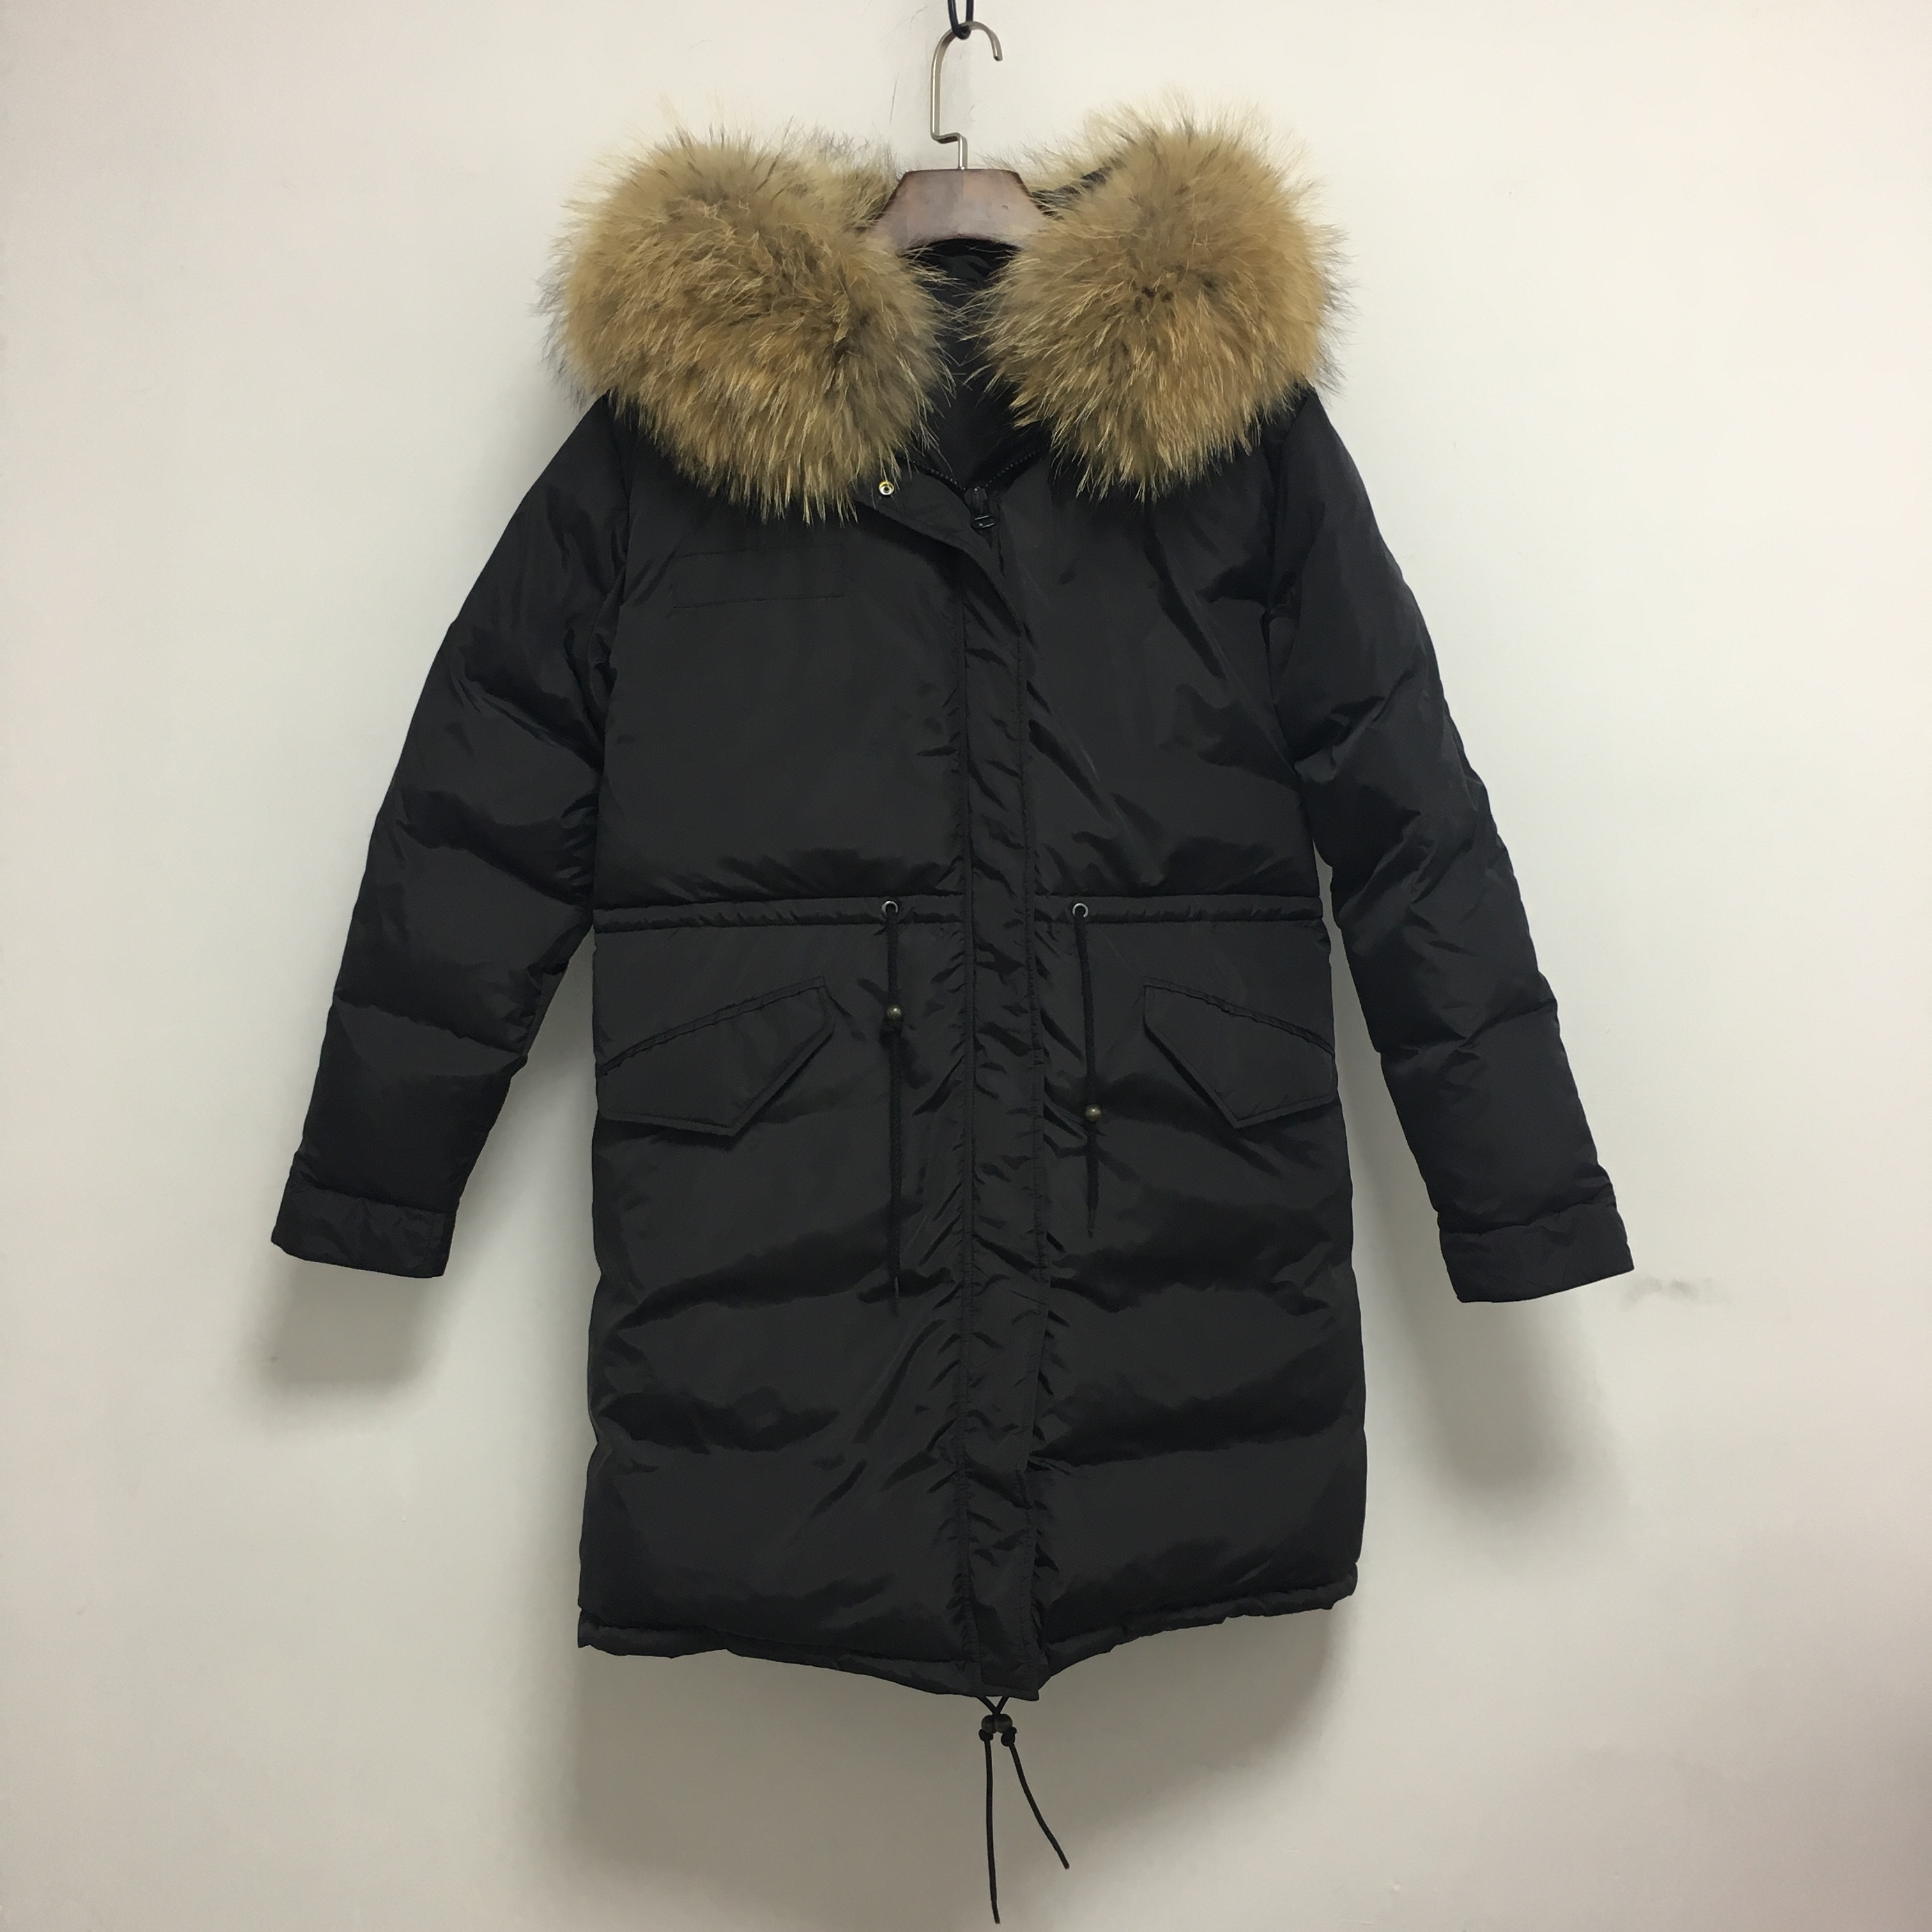 Black Long Down Coat With Signature Natural Fur Collar Outer Fit enlarge